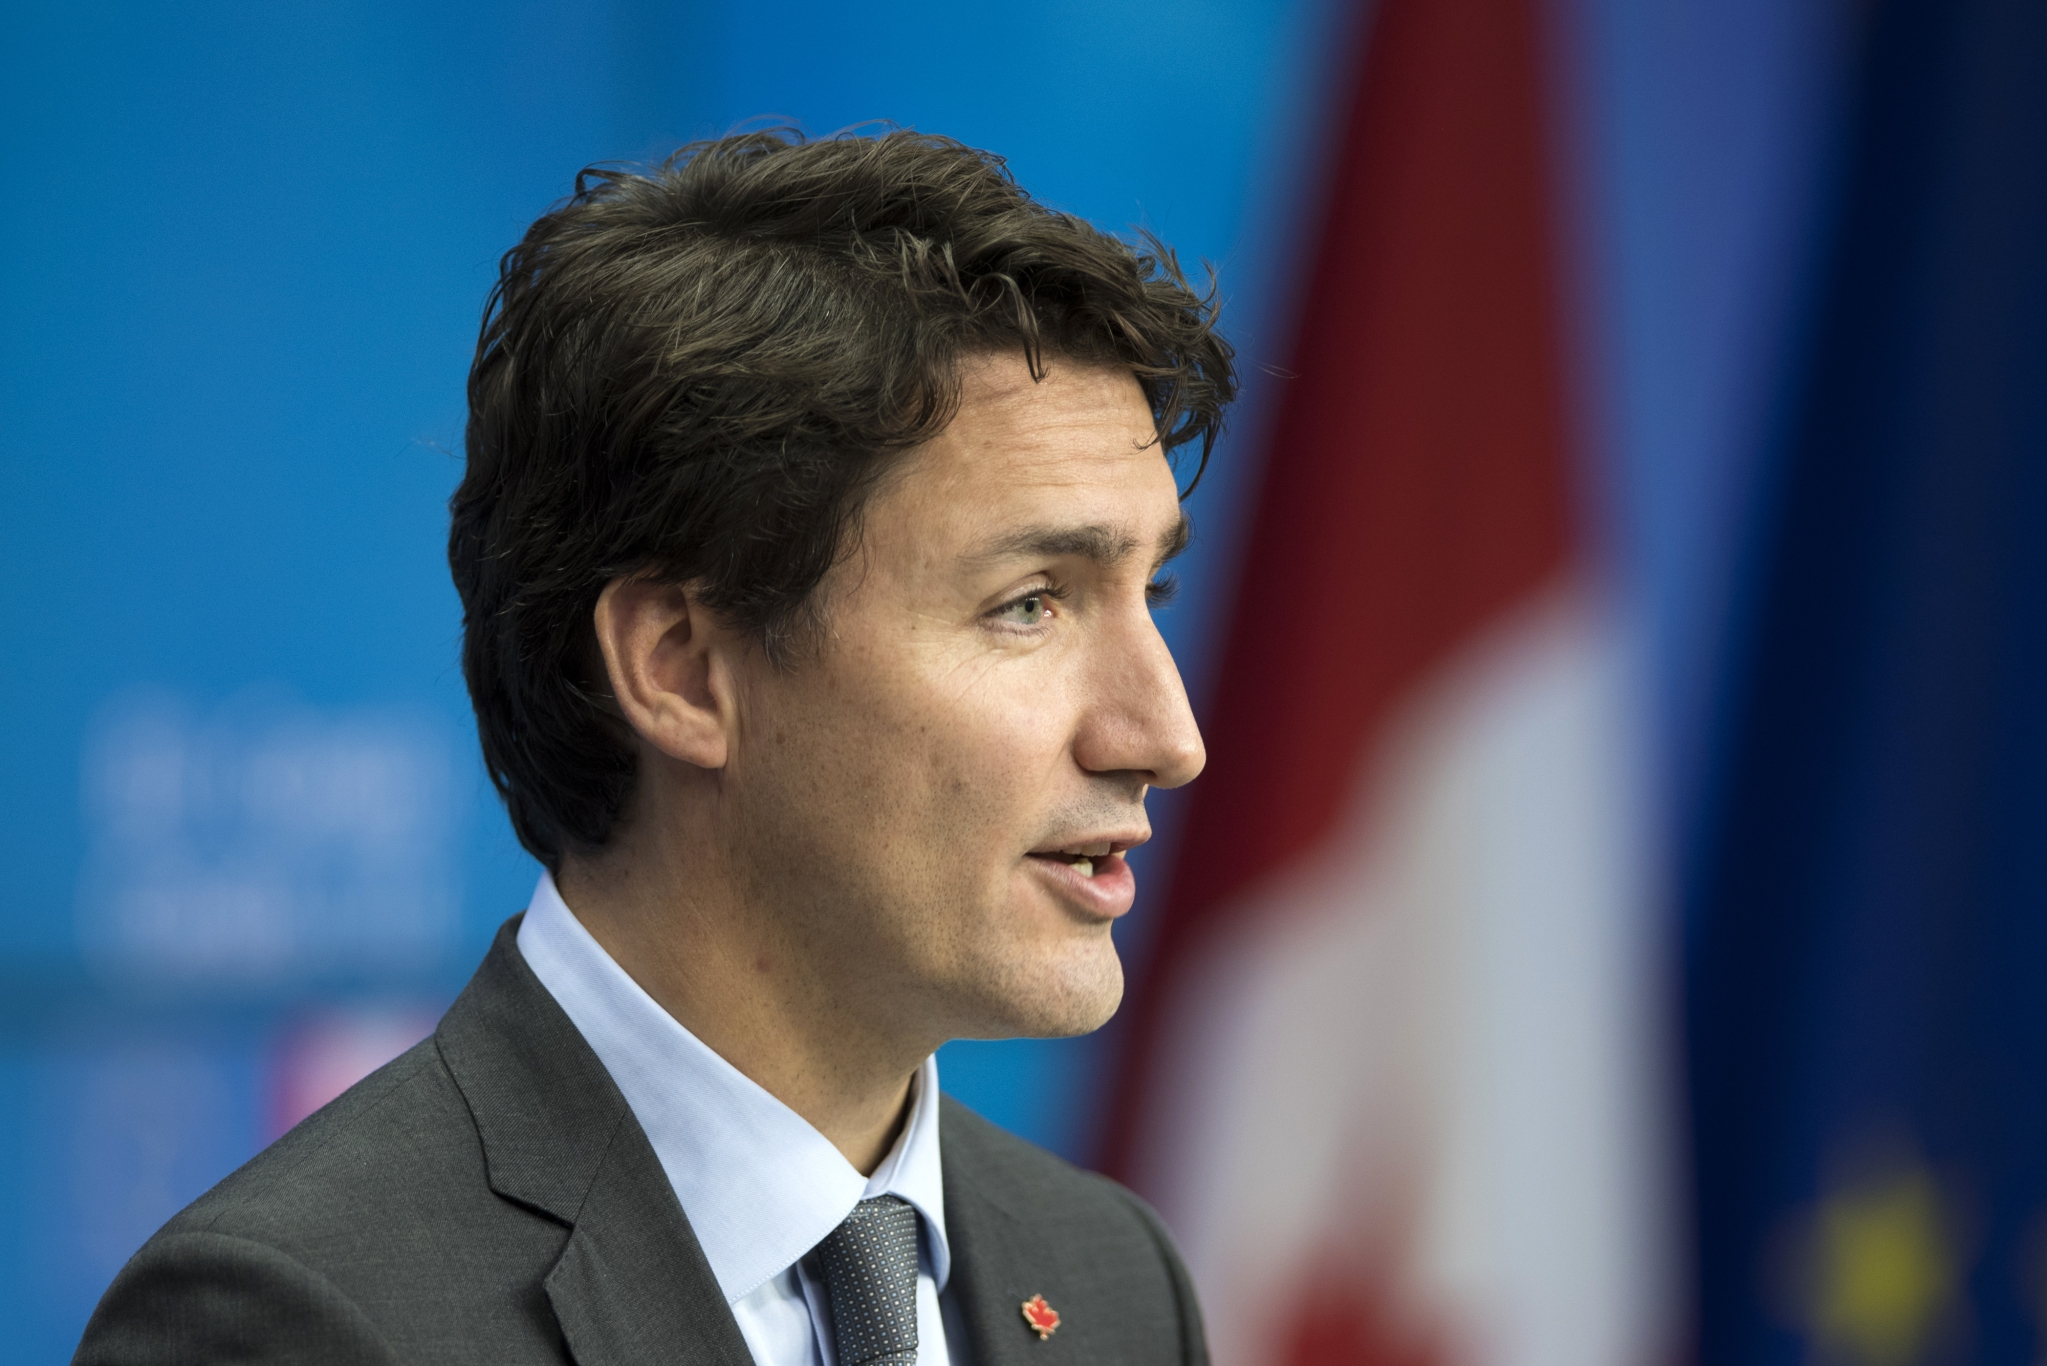 Trudeau Joins Obama In Freezing Arctic Offshore Oil Drilling